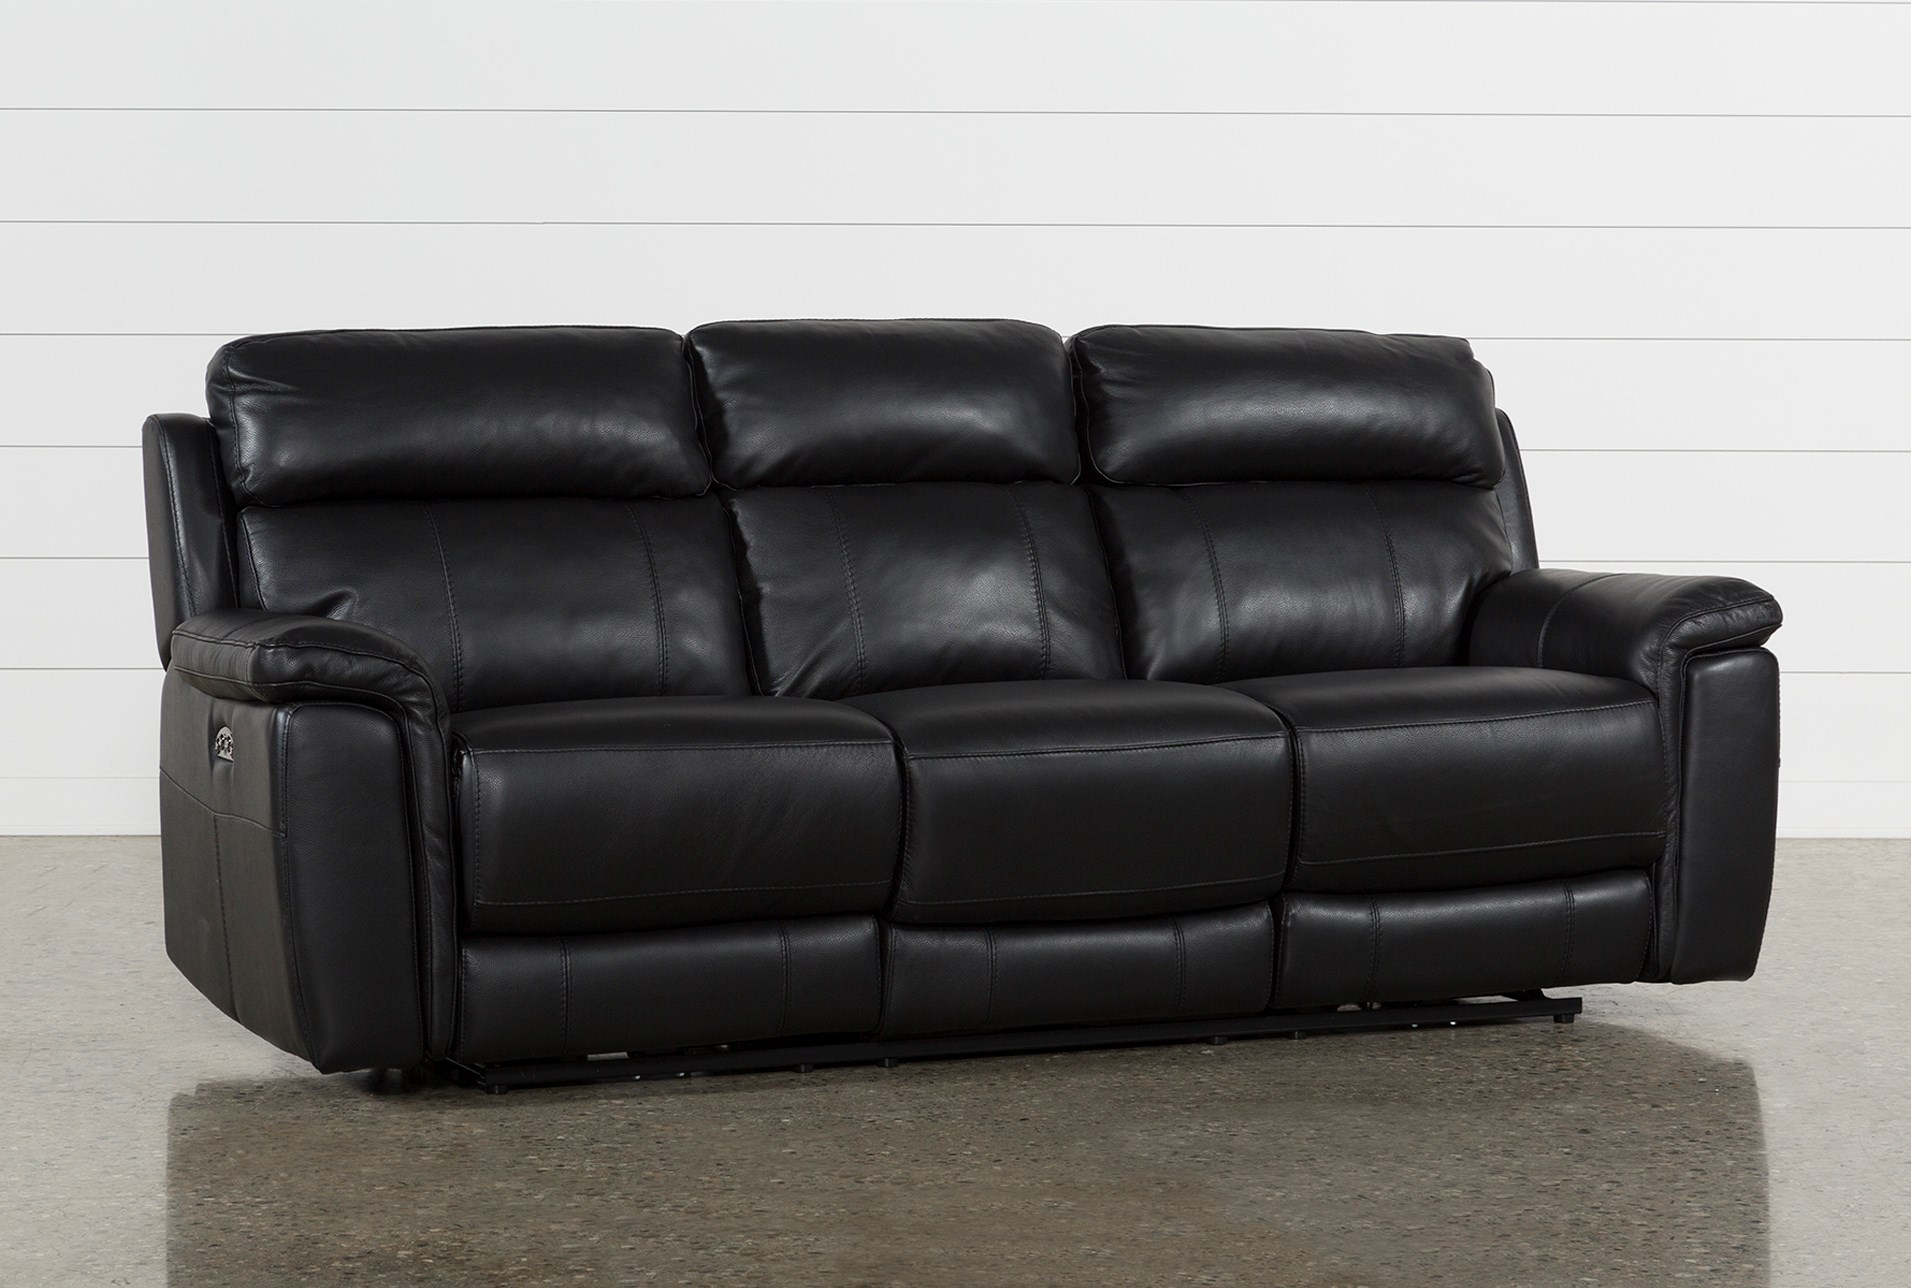 Dino Black Leather Power Reclining Sofa W/Power Headrest & Usb